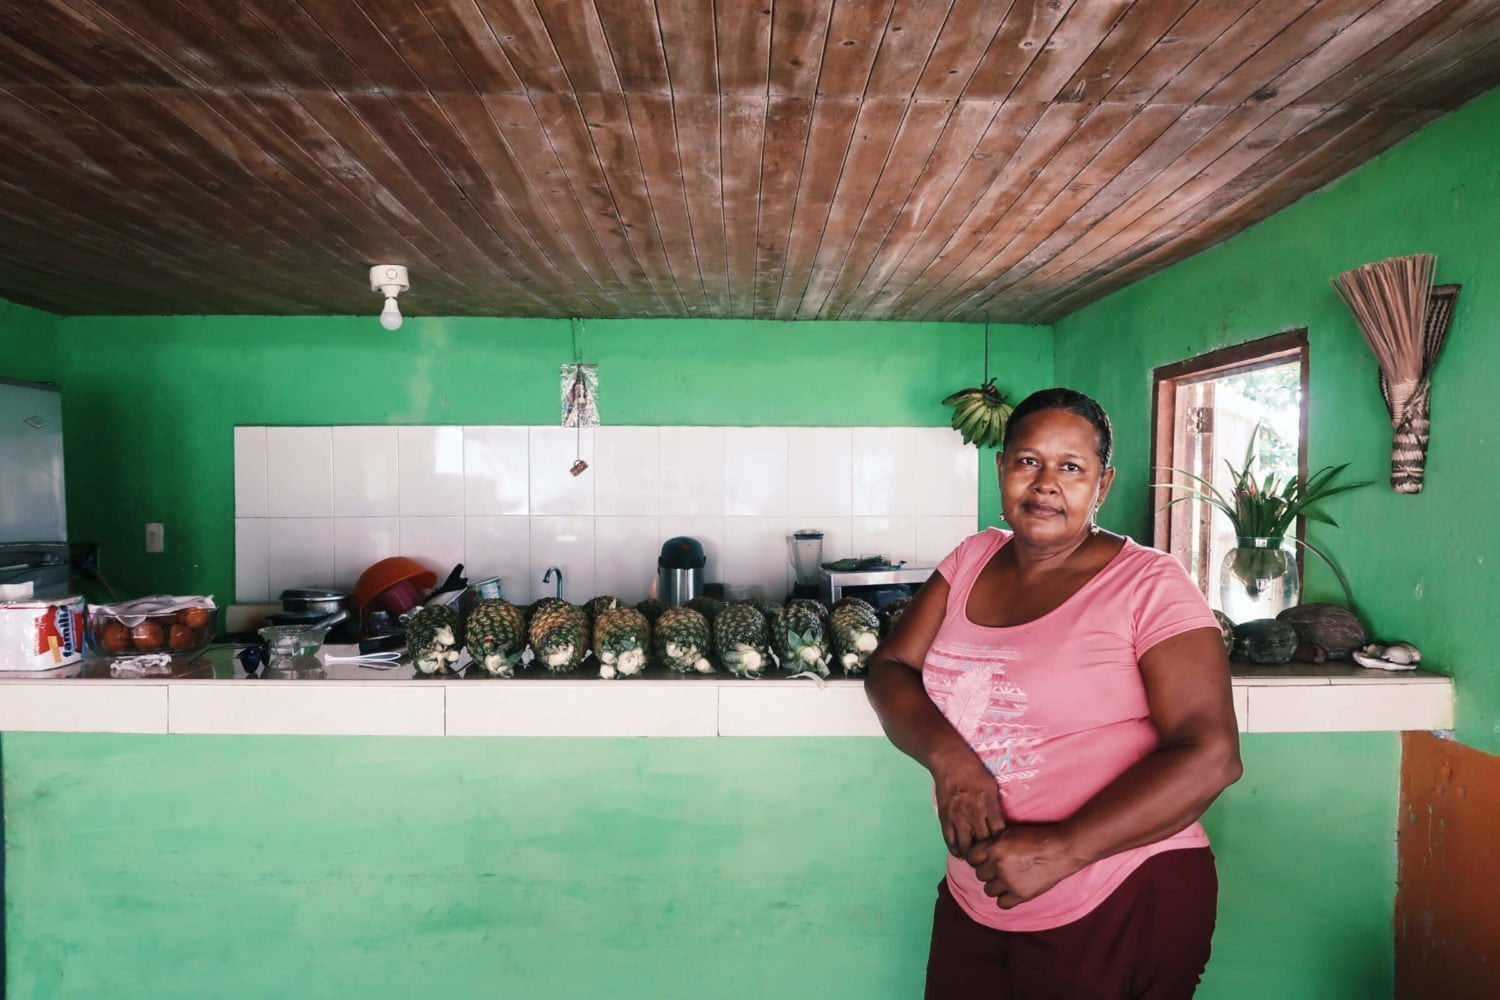 Pilar posing by her smoothie bar in El Valle, Colombia